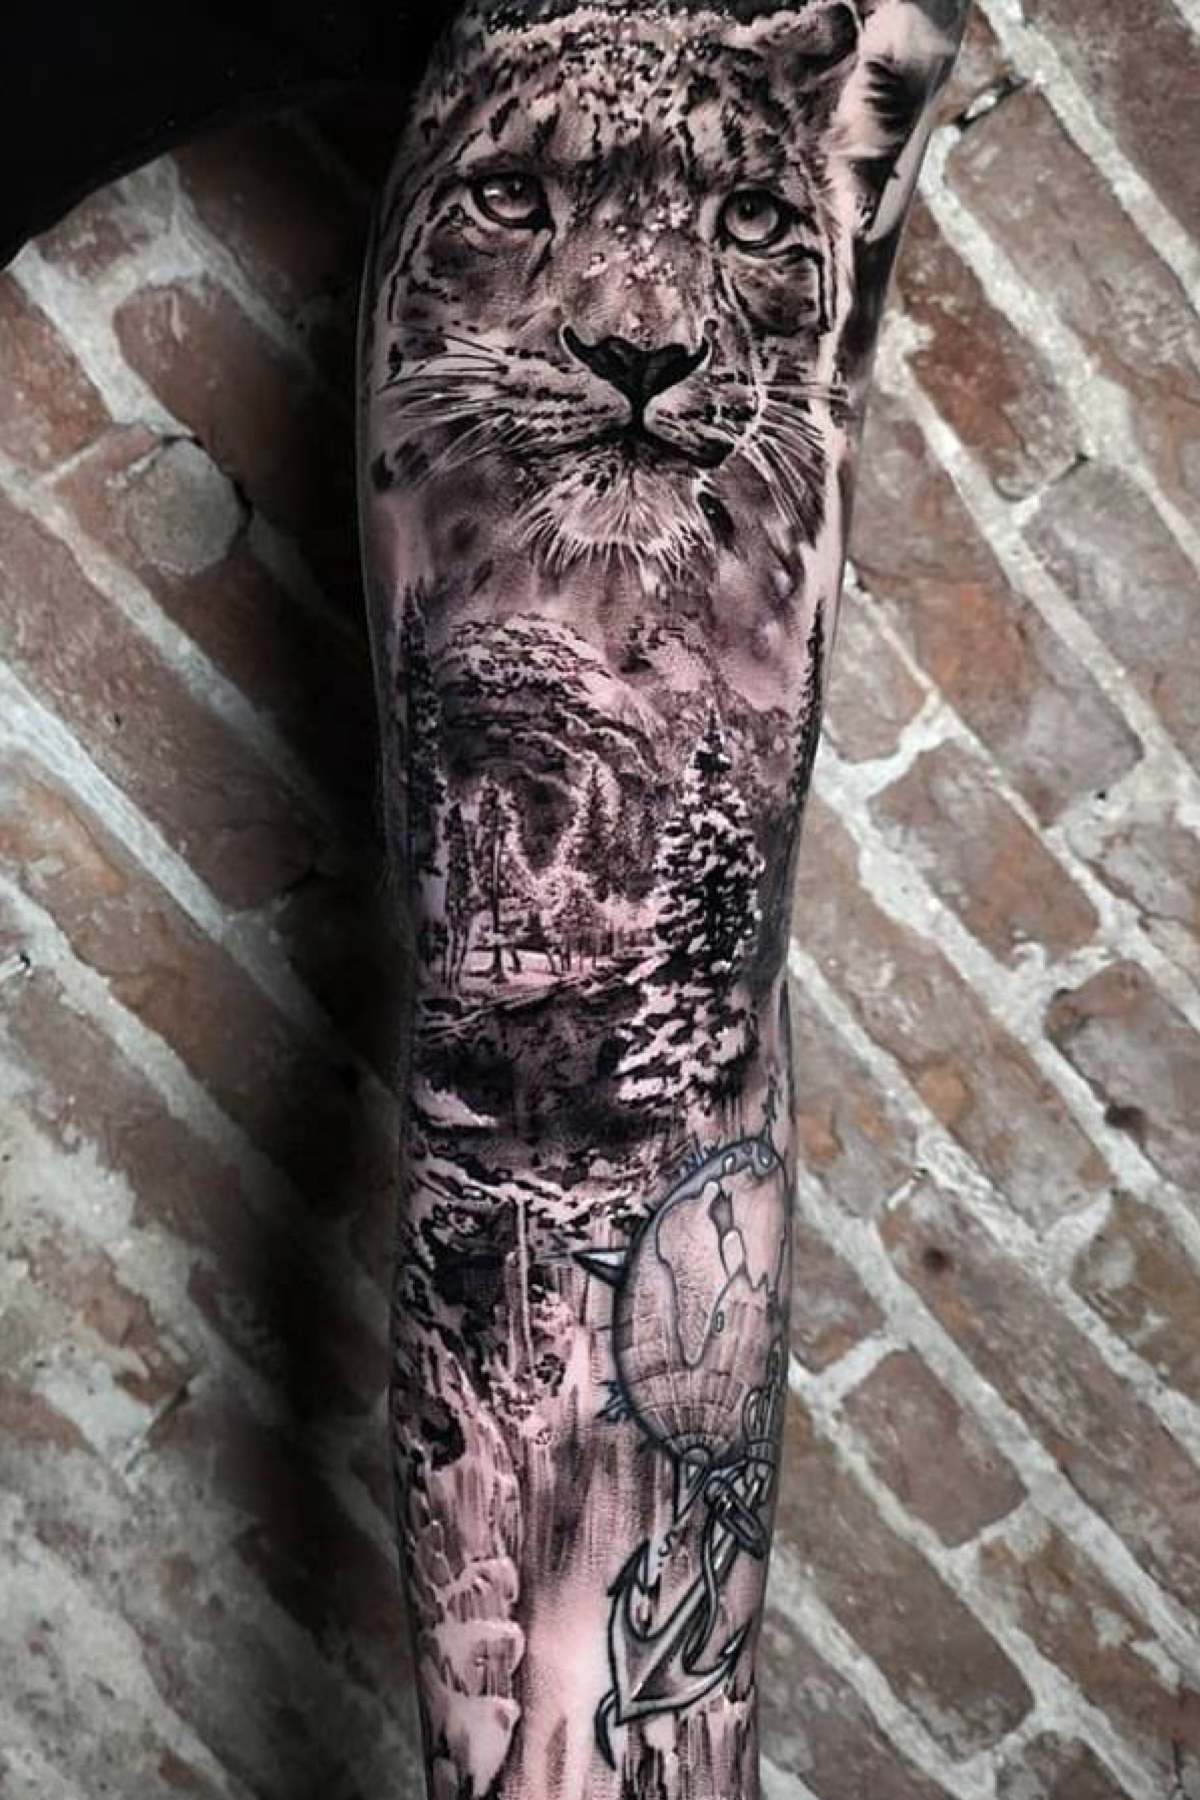 Black And Grey Nature And Snow Leopard Full Sleeve Tattoo Realistic Big Cats Tattoo By John Hudic Leopard Tattoos Sleeve Tattoos Big Cat Tattoo